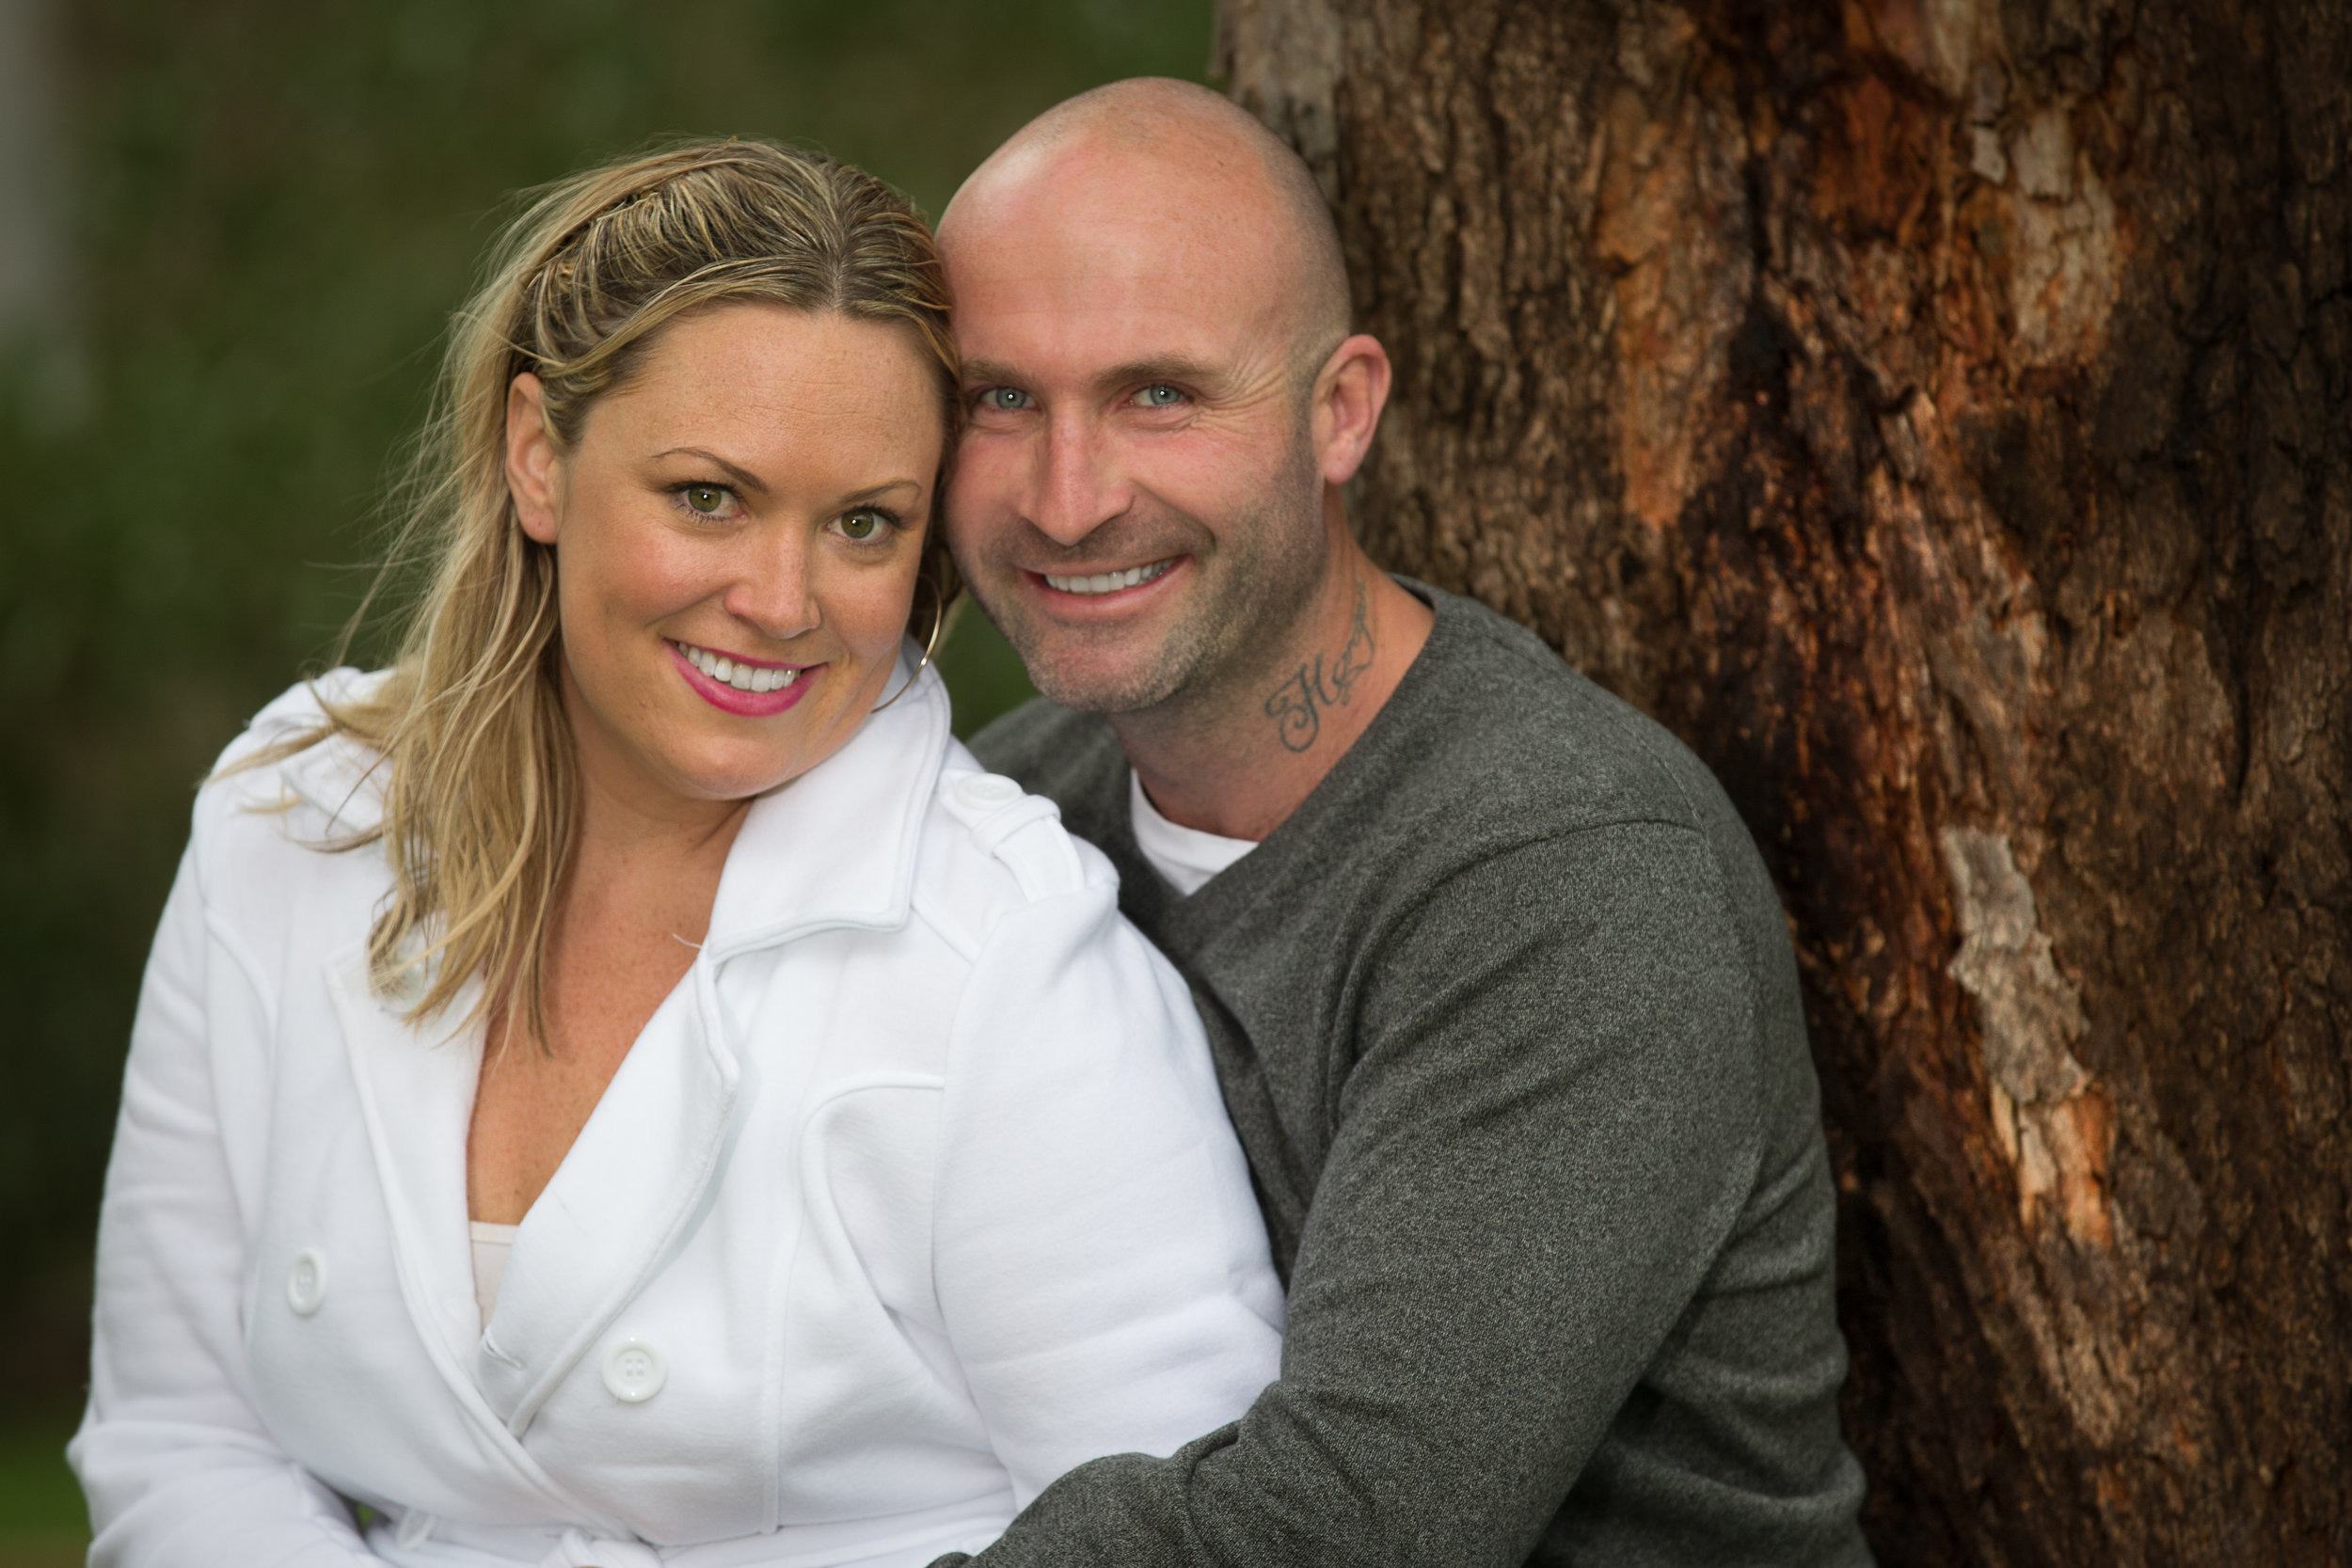 Kurt Nigg can capture your couple portrait in the most natural environment creating a lift time memory to cherish